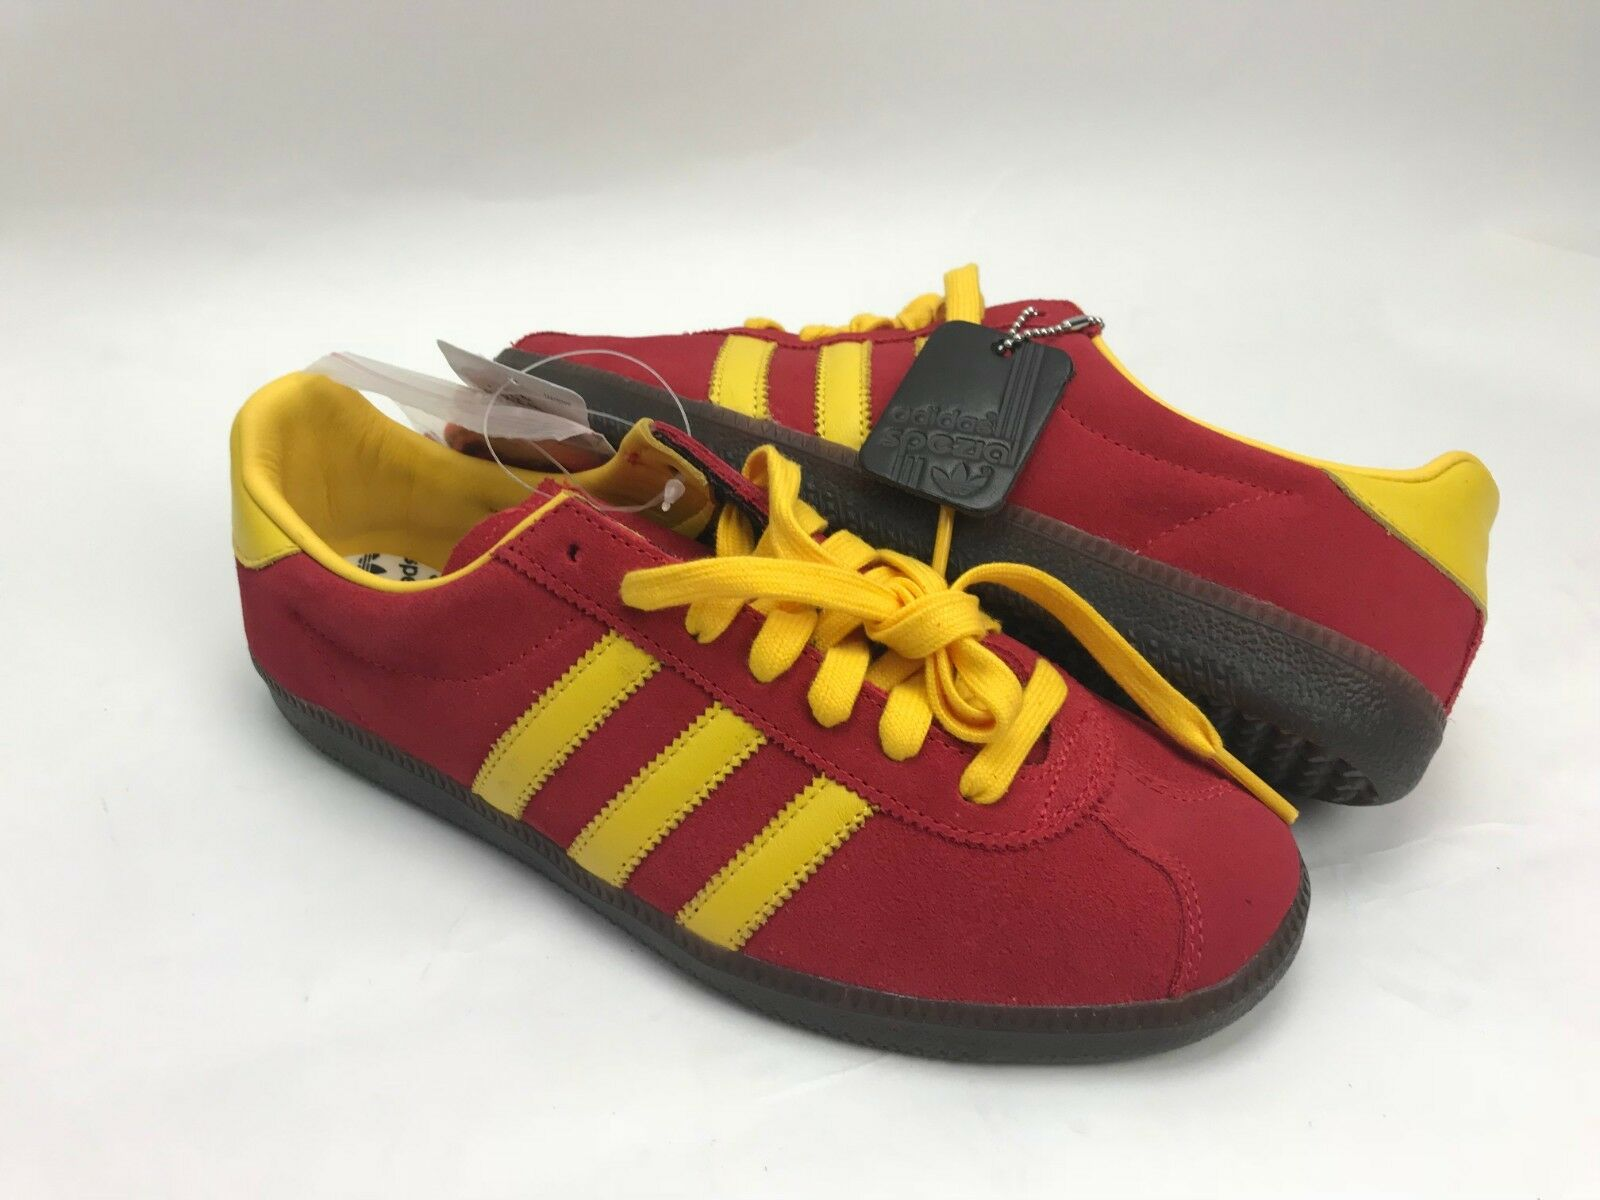 Adidas Originals Spritus SPZL - CG2923 - Scarlet Red Yellow Dark Gum - Size 7